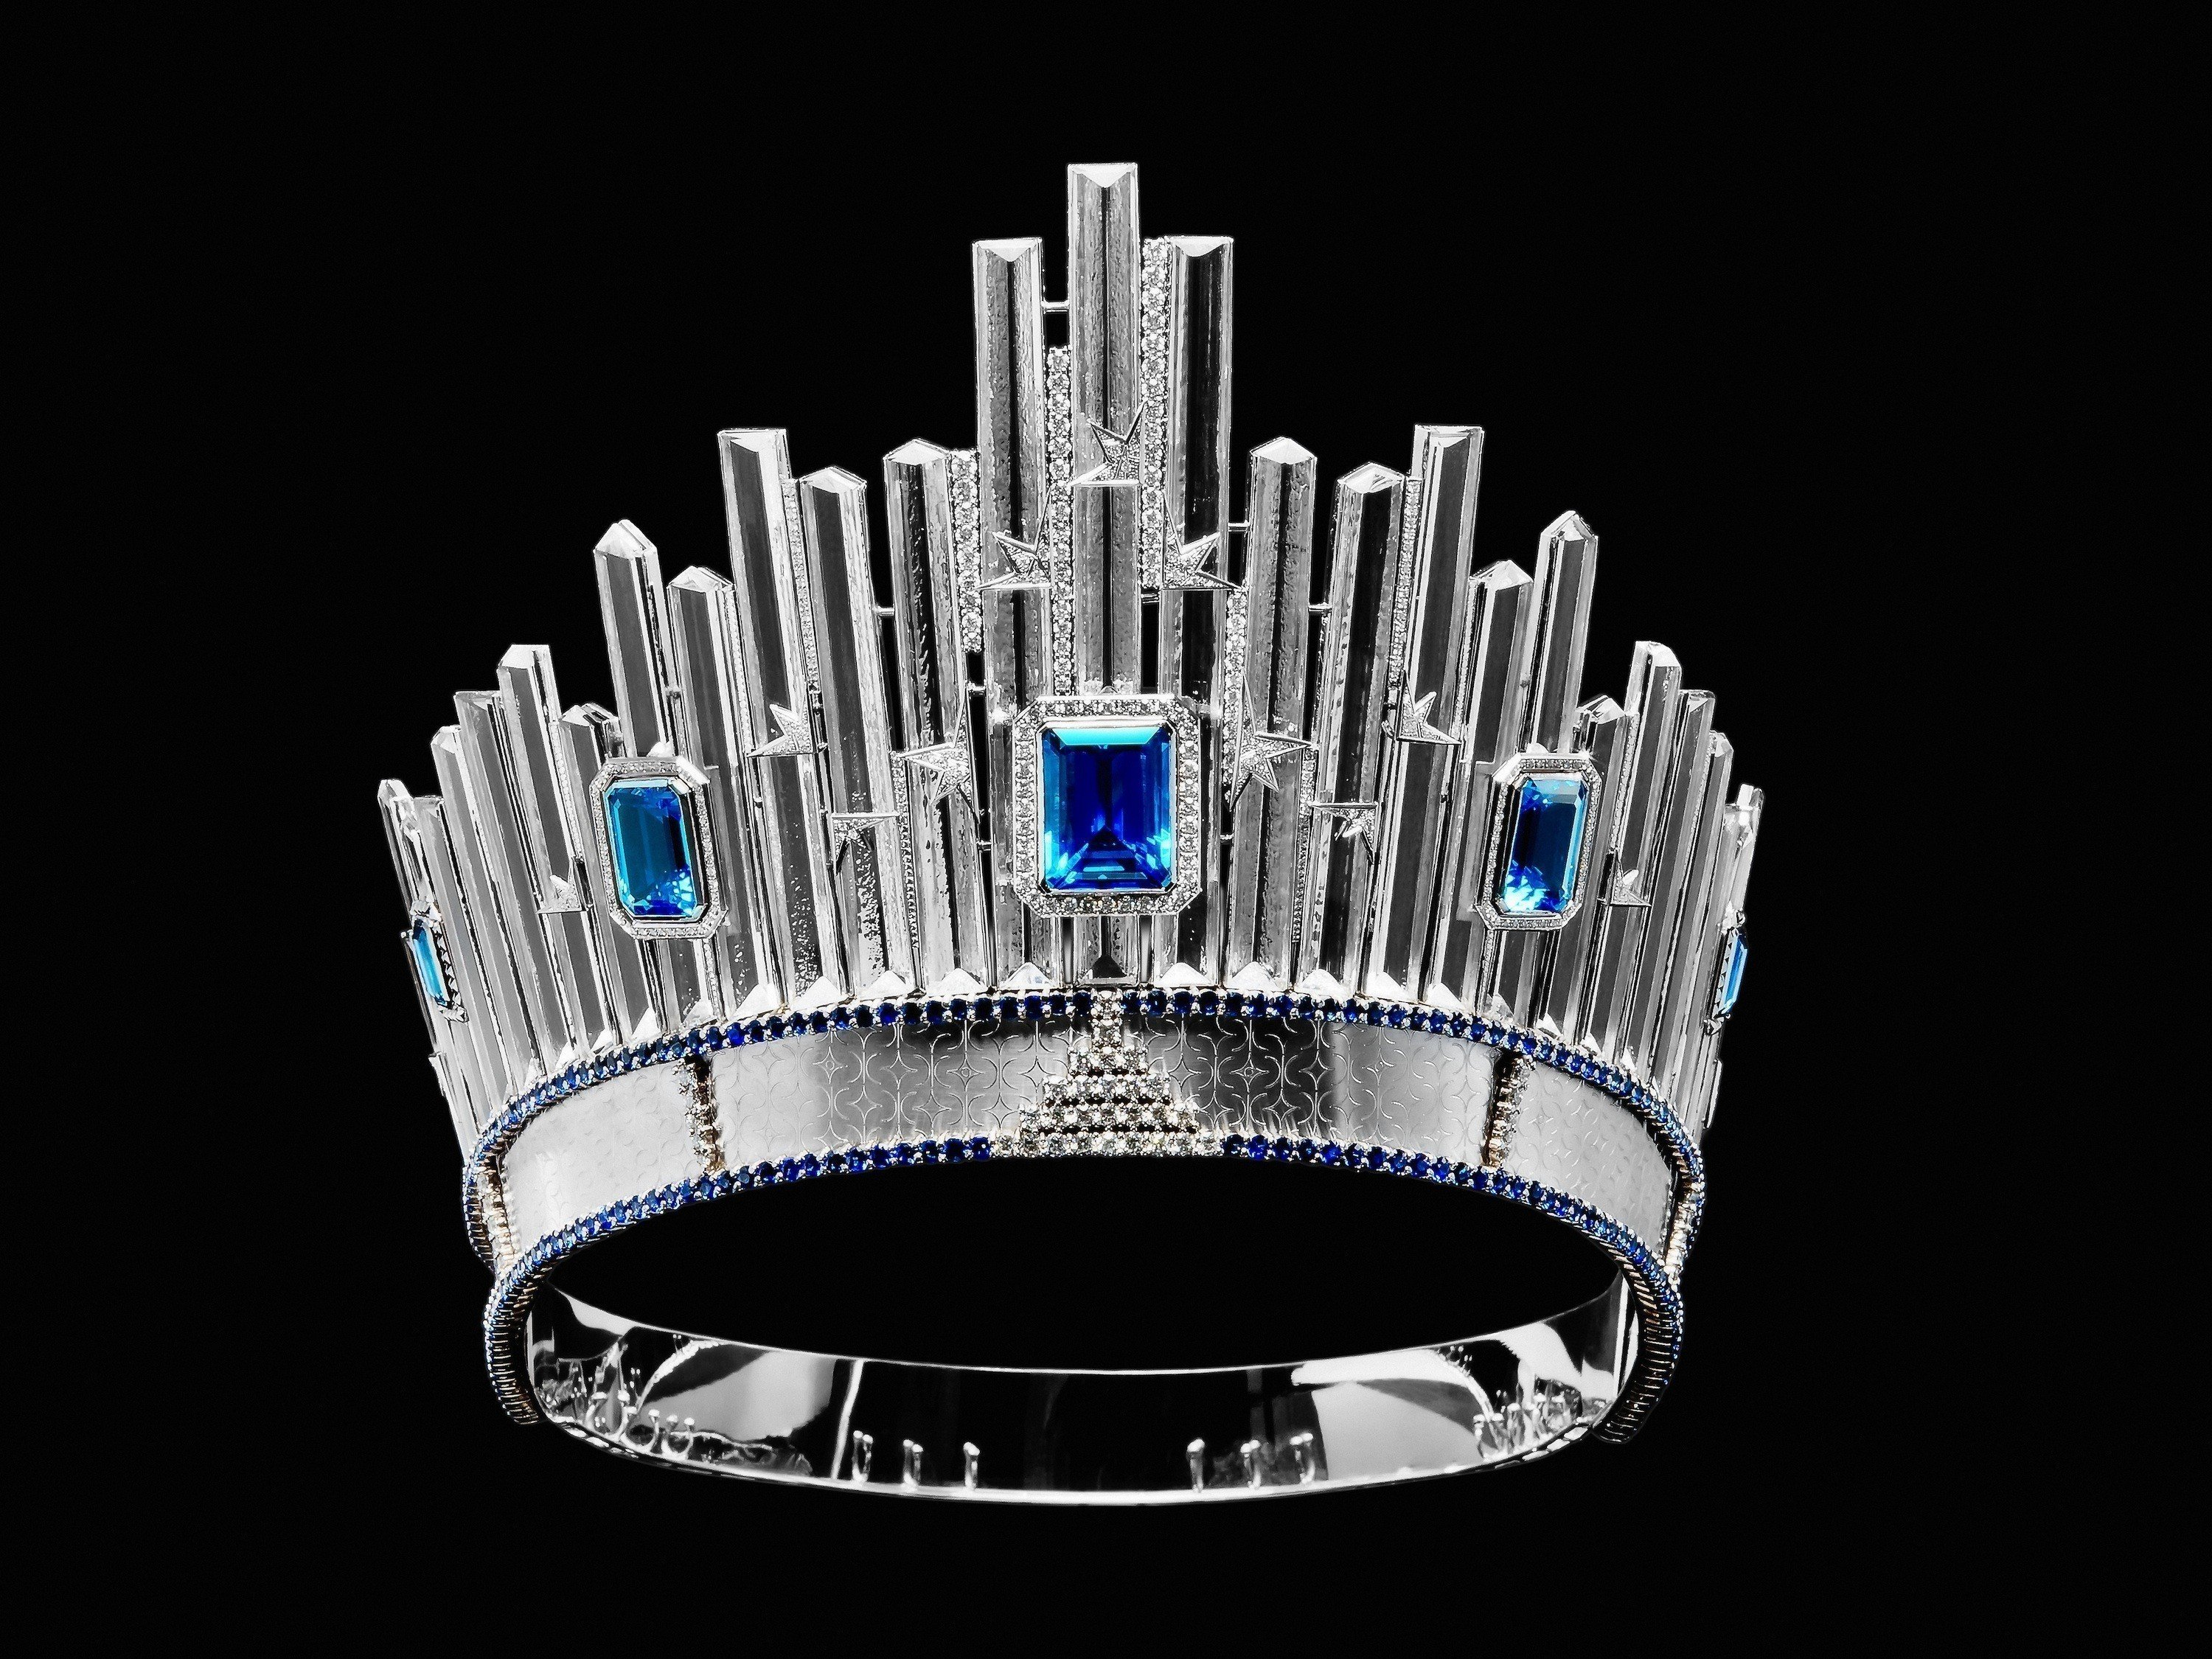 xmiss-universe-crown.jpg.pagespeed.ic.AzOvKw8qMg